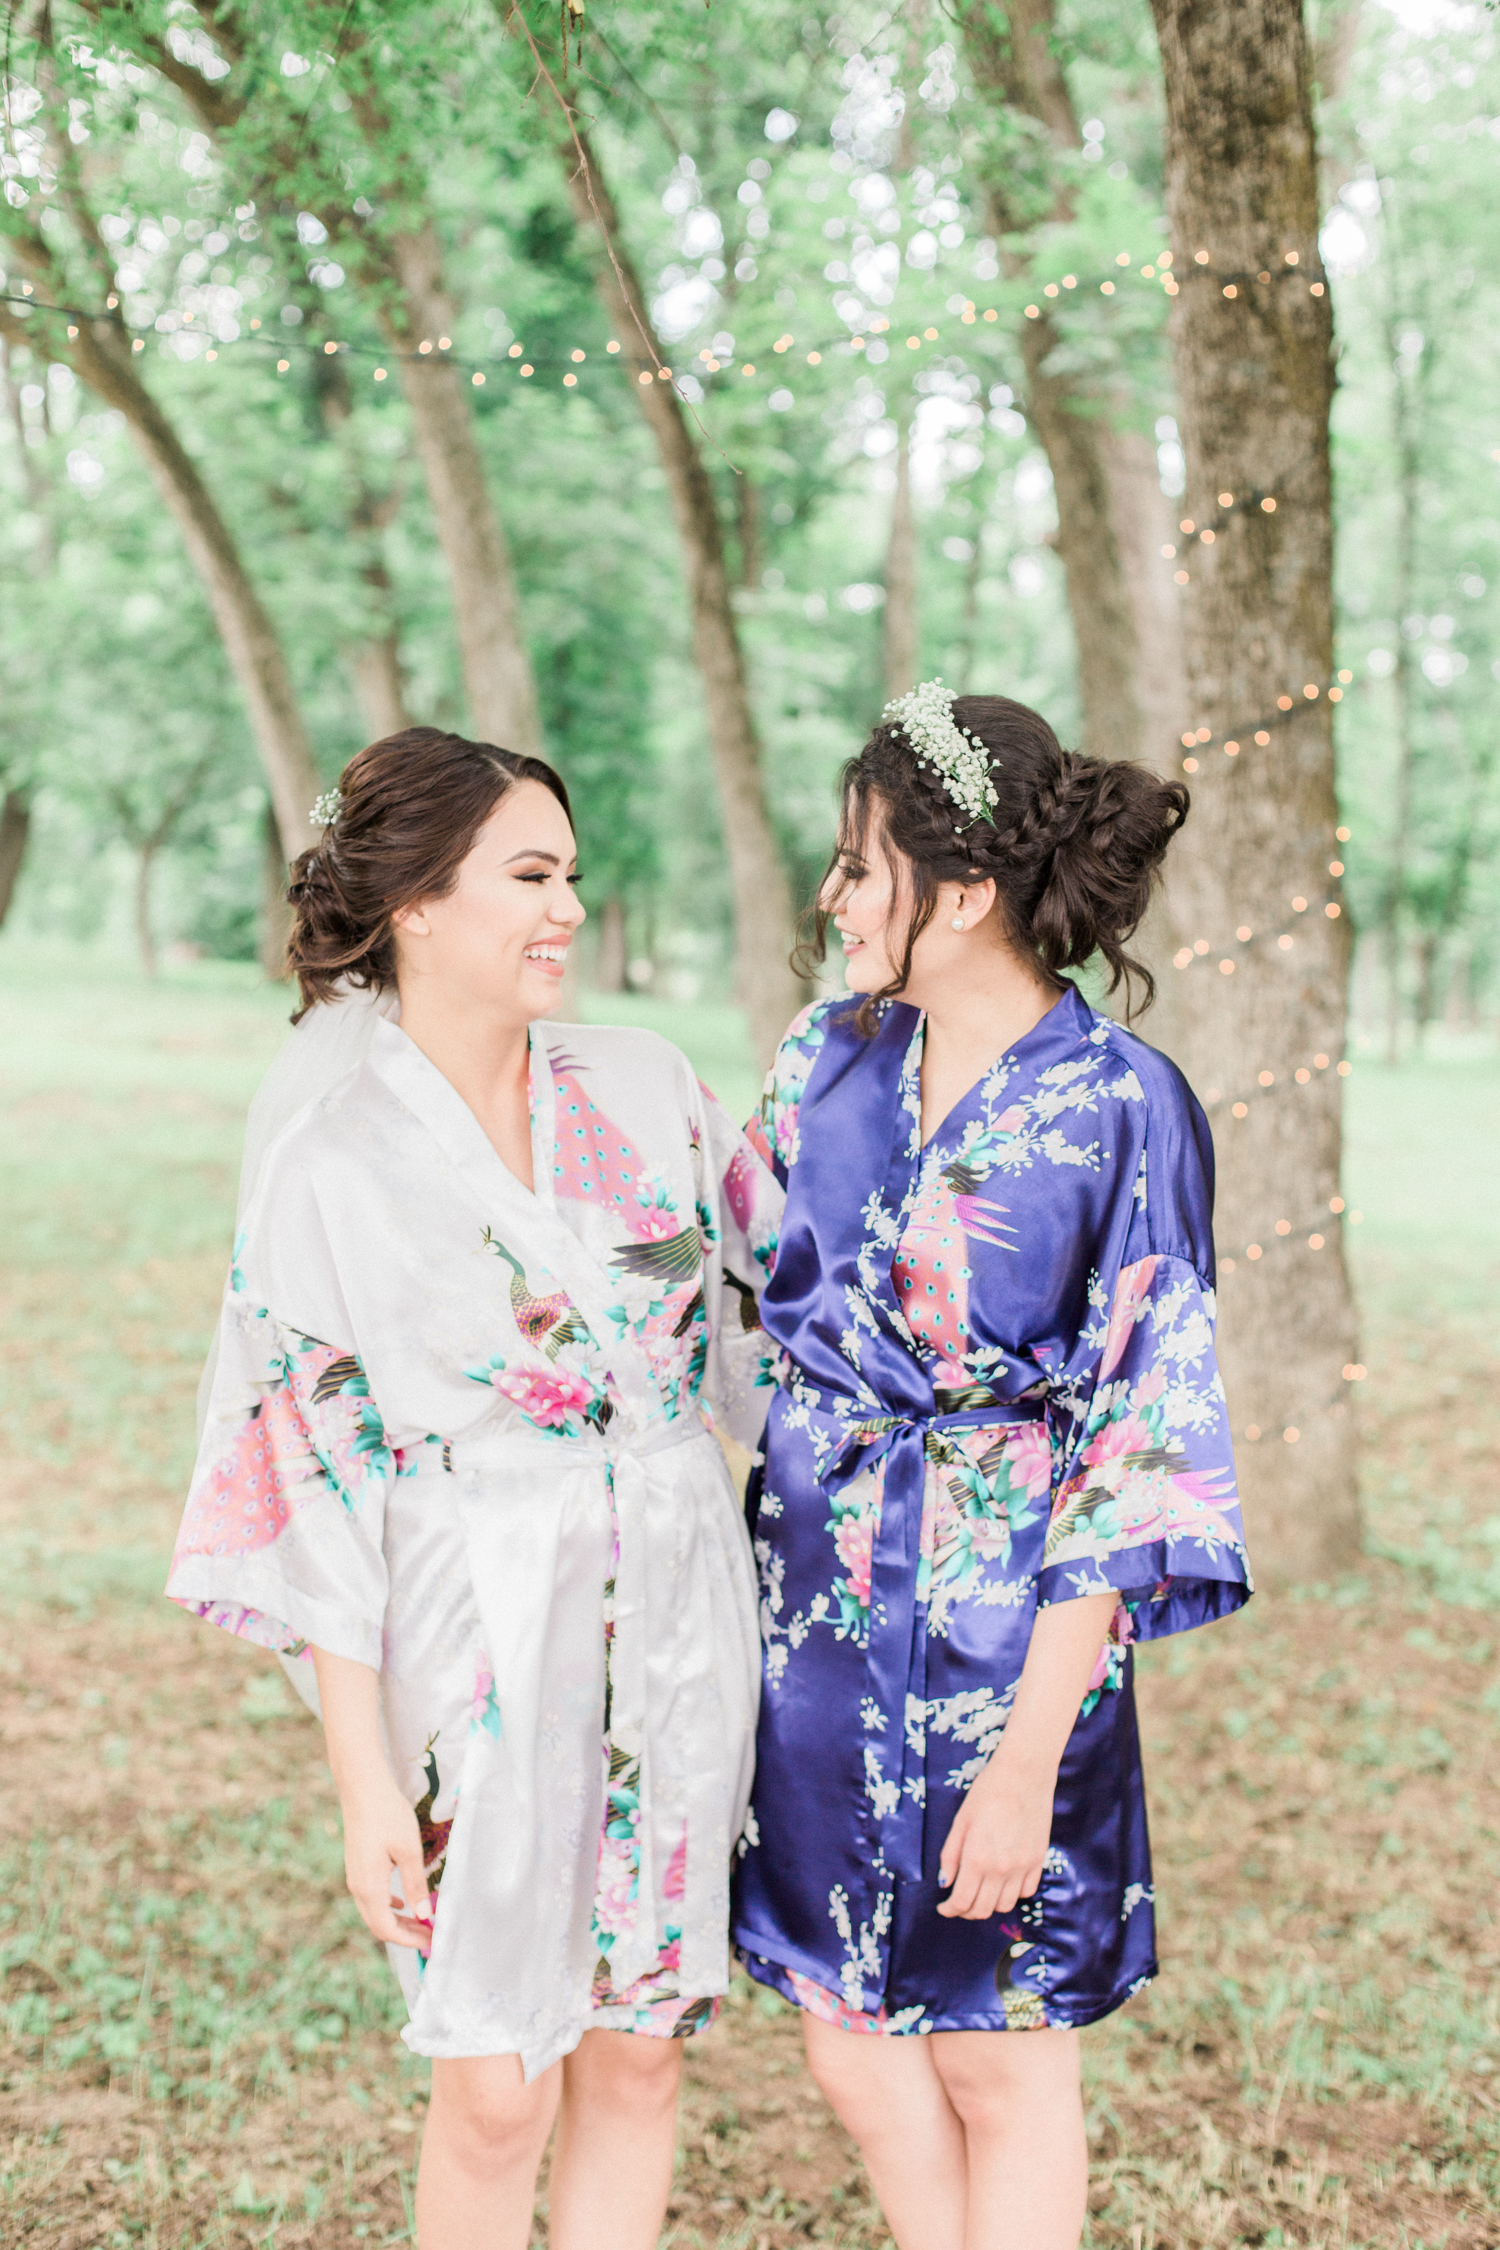 Getting ready wedding photo- bride and her best friend in their Japanese floral robes. Summer, outdoor, barn wedding in north Georgia at Hays McDonald Farm in Jefferson, Georgia. Photo by Kesia Marie Photography - Fine Art Wedding Photographer.